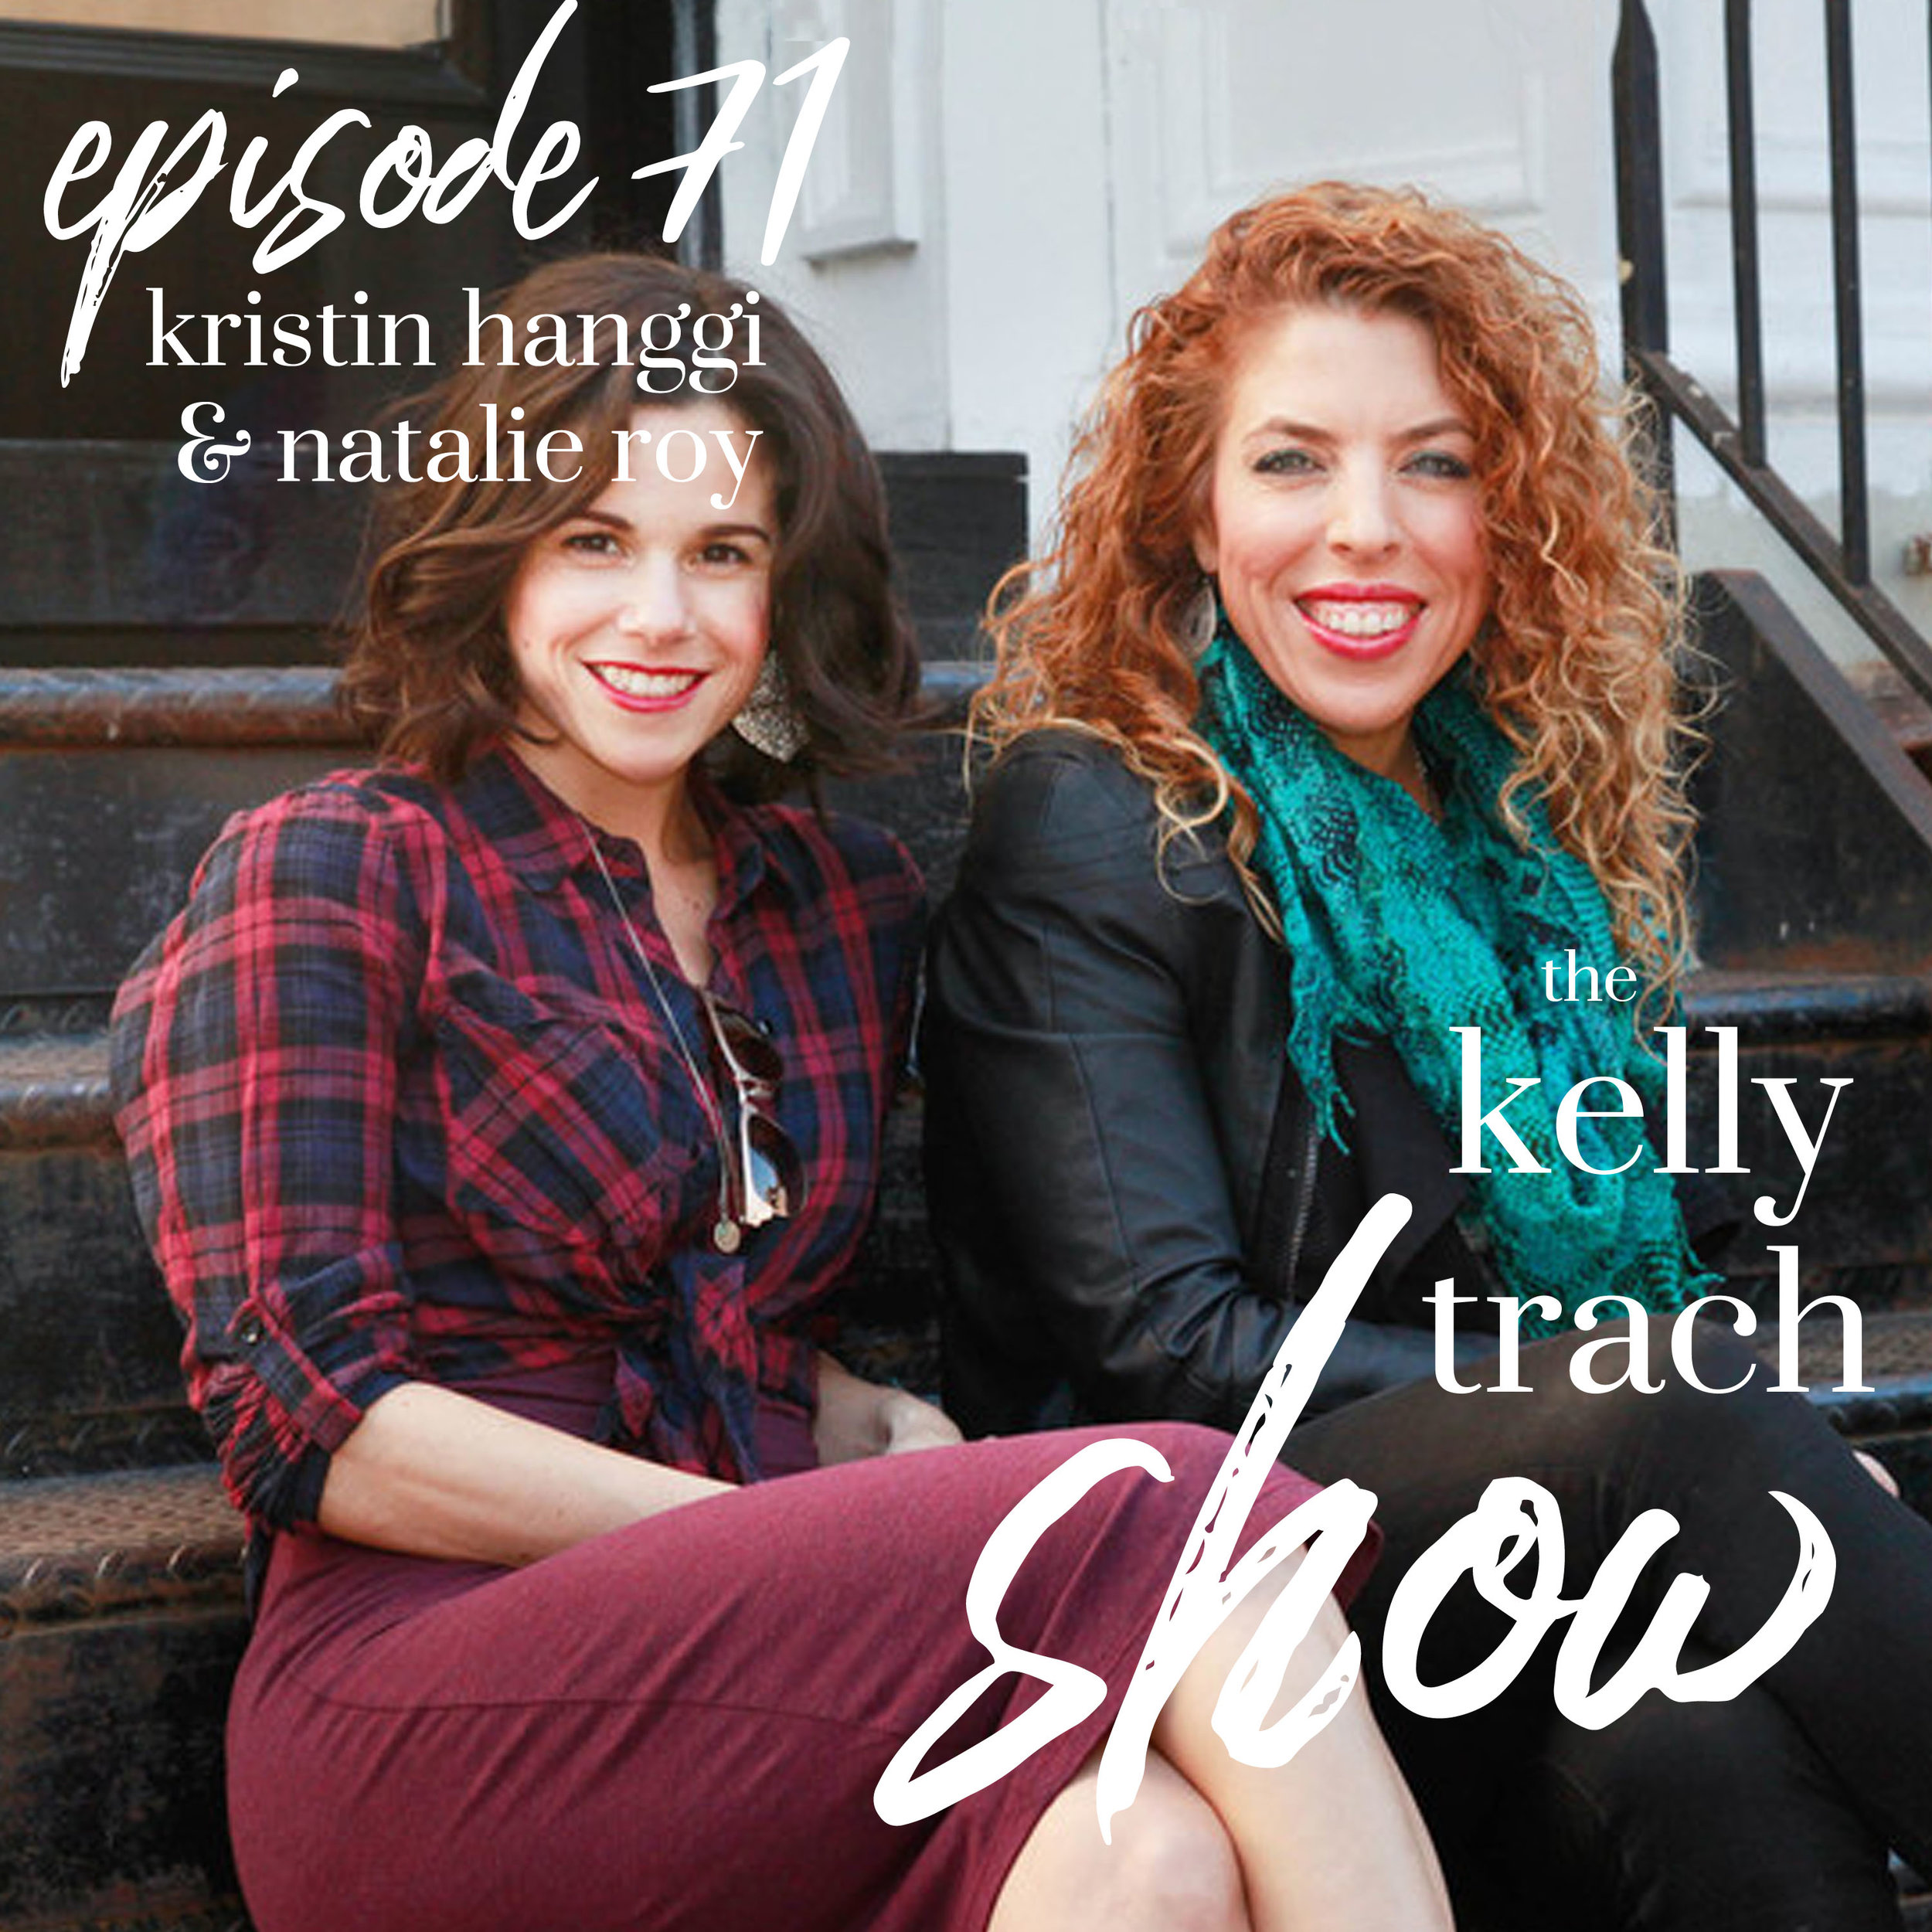 71 - Kristin Hanggi & Natalie Roy - The Kelly Trach Show Podcast.jpg